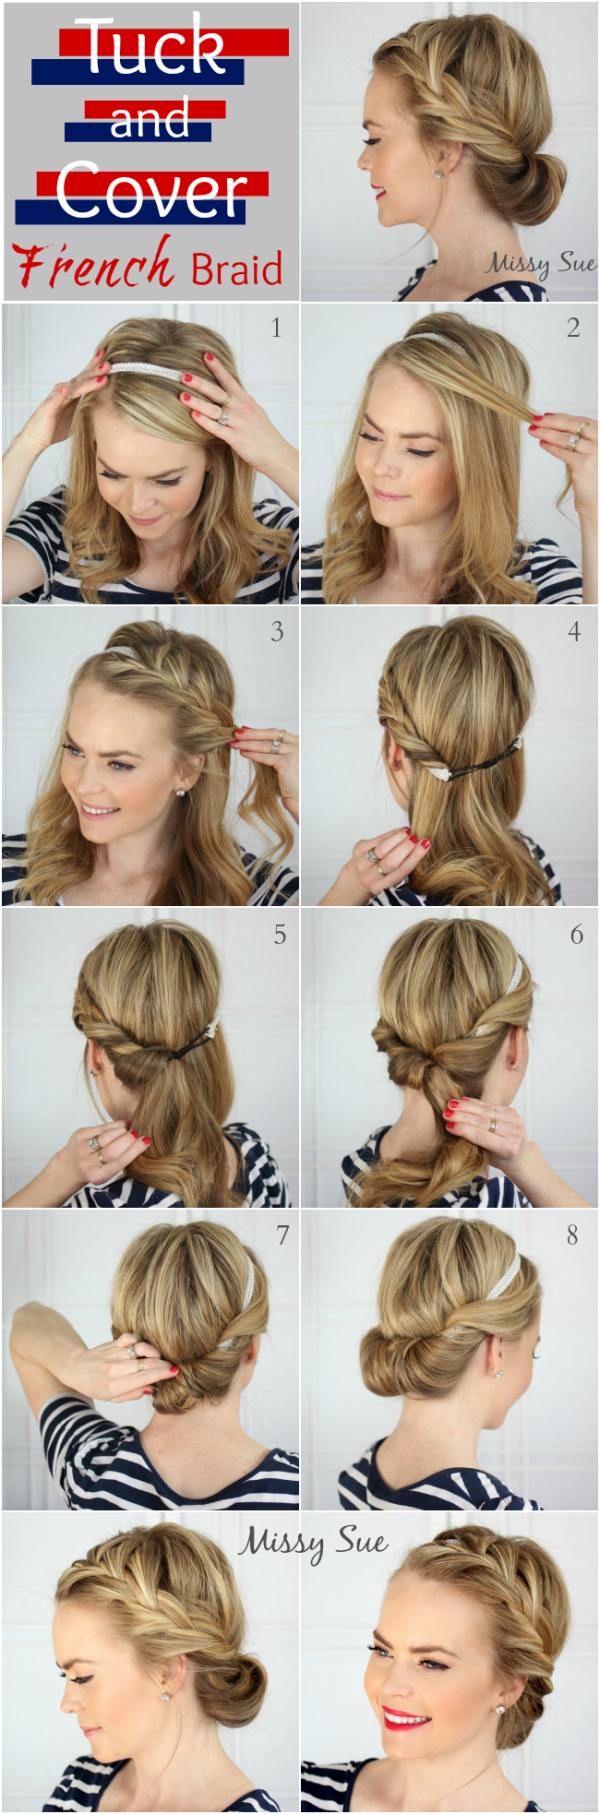 13 Fast Diy Hairstyle Tutorials For Everyday Use Hairstyles